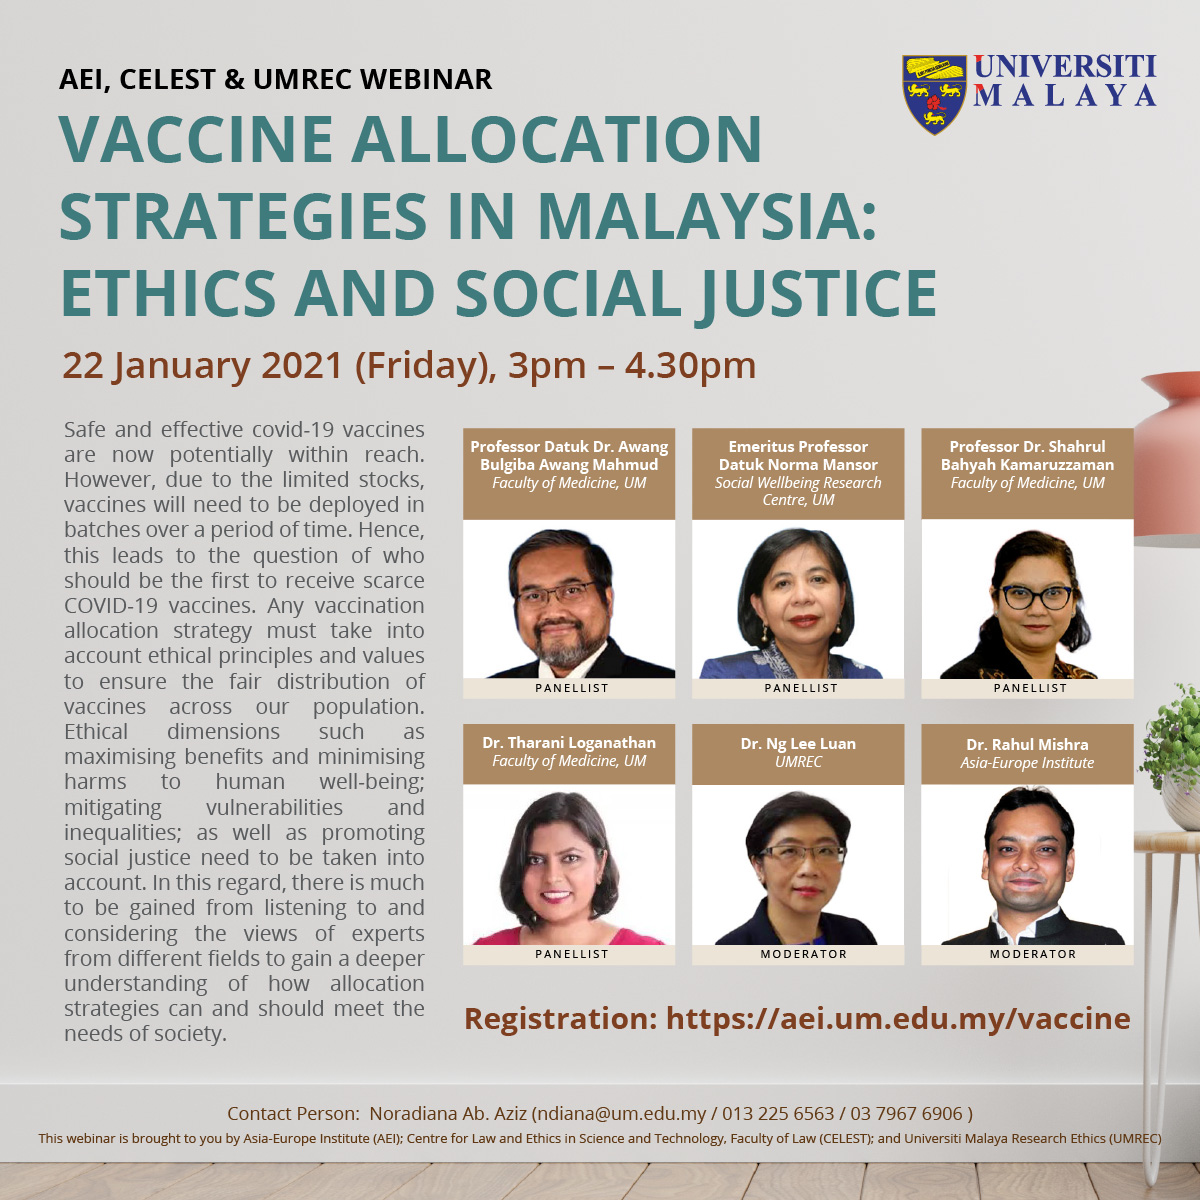 Vaccine Allocation Strategies in Malaysia: Ethics and Social Justice